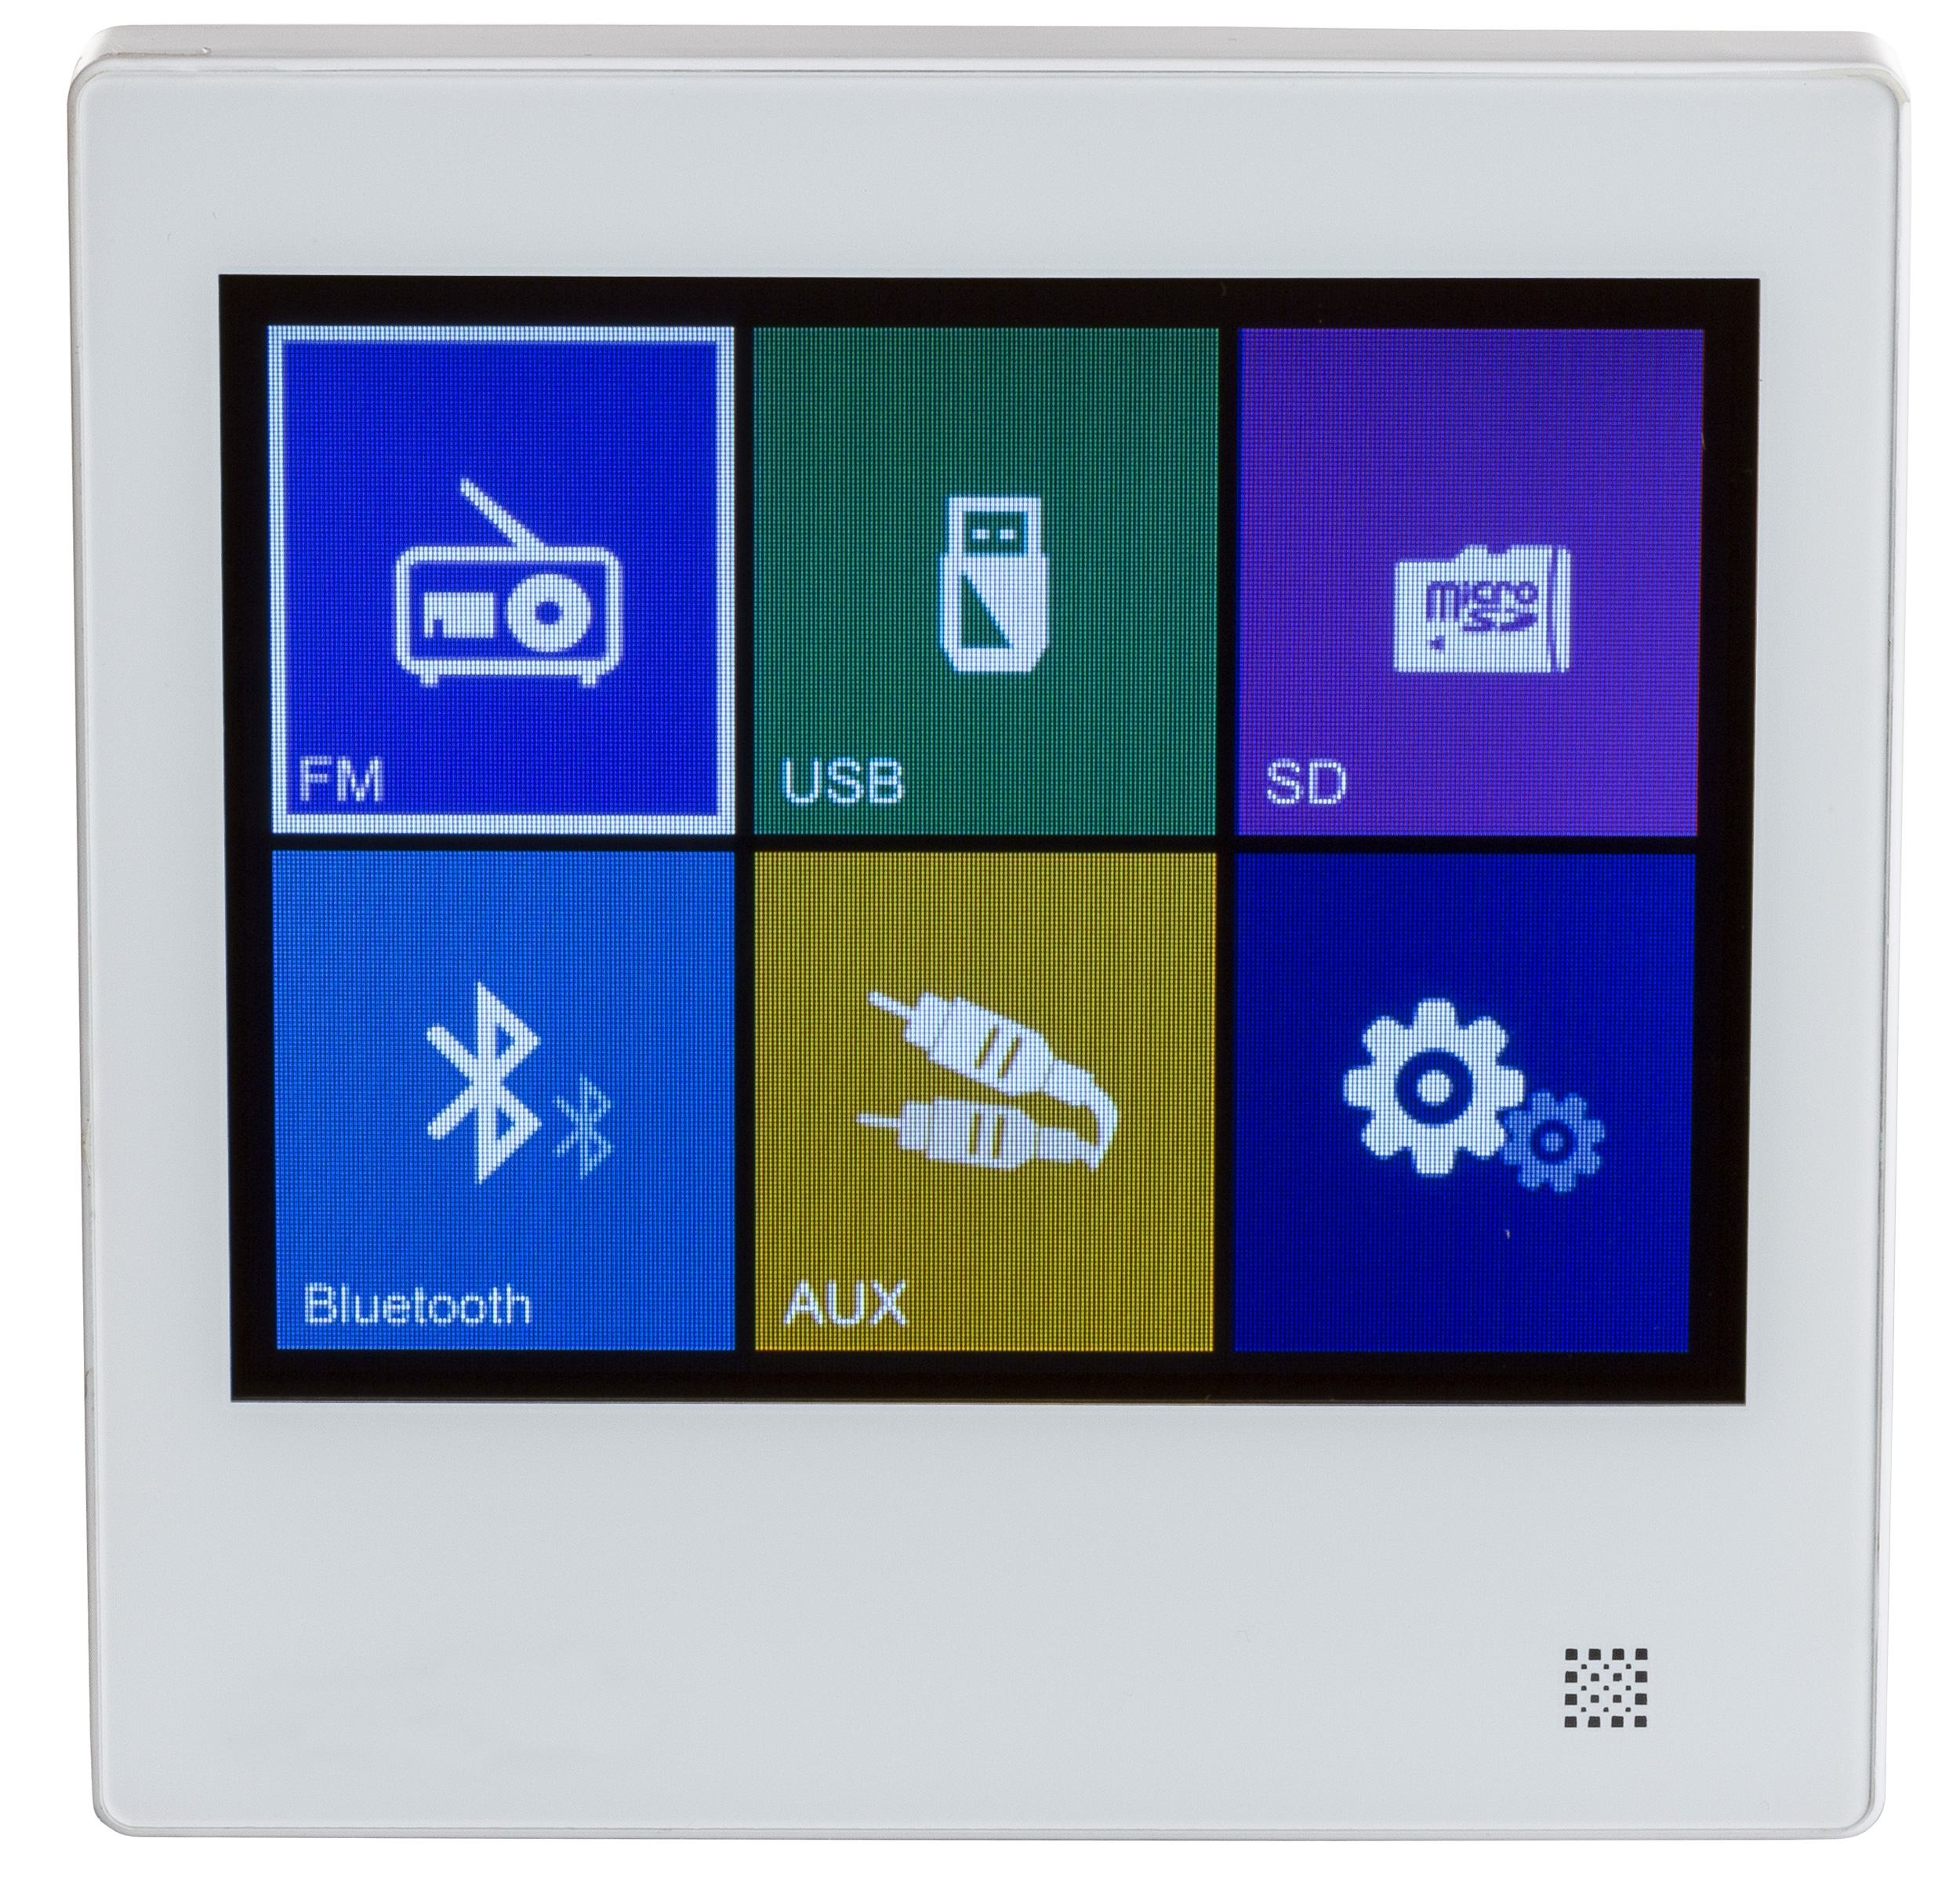 2x10W wall amplifier with SD, USB, BLUETOOTH, Radio, AUX  touch screen